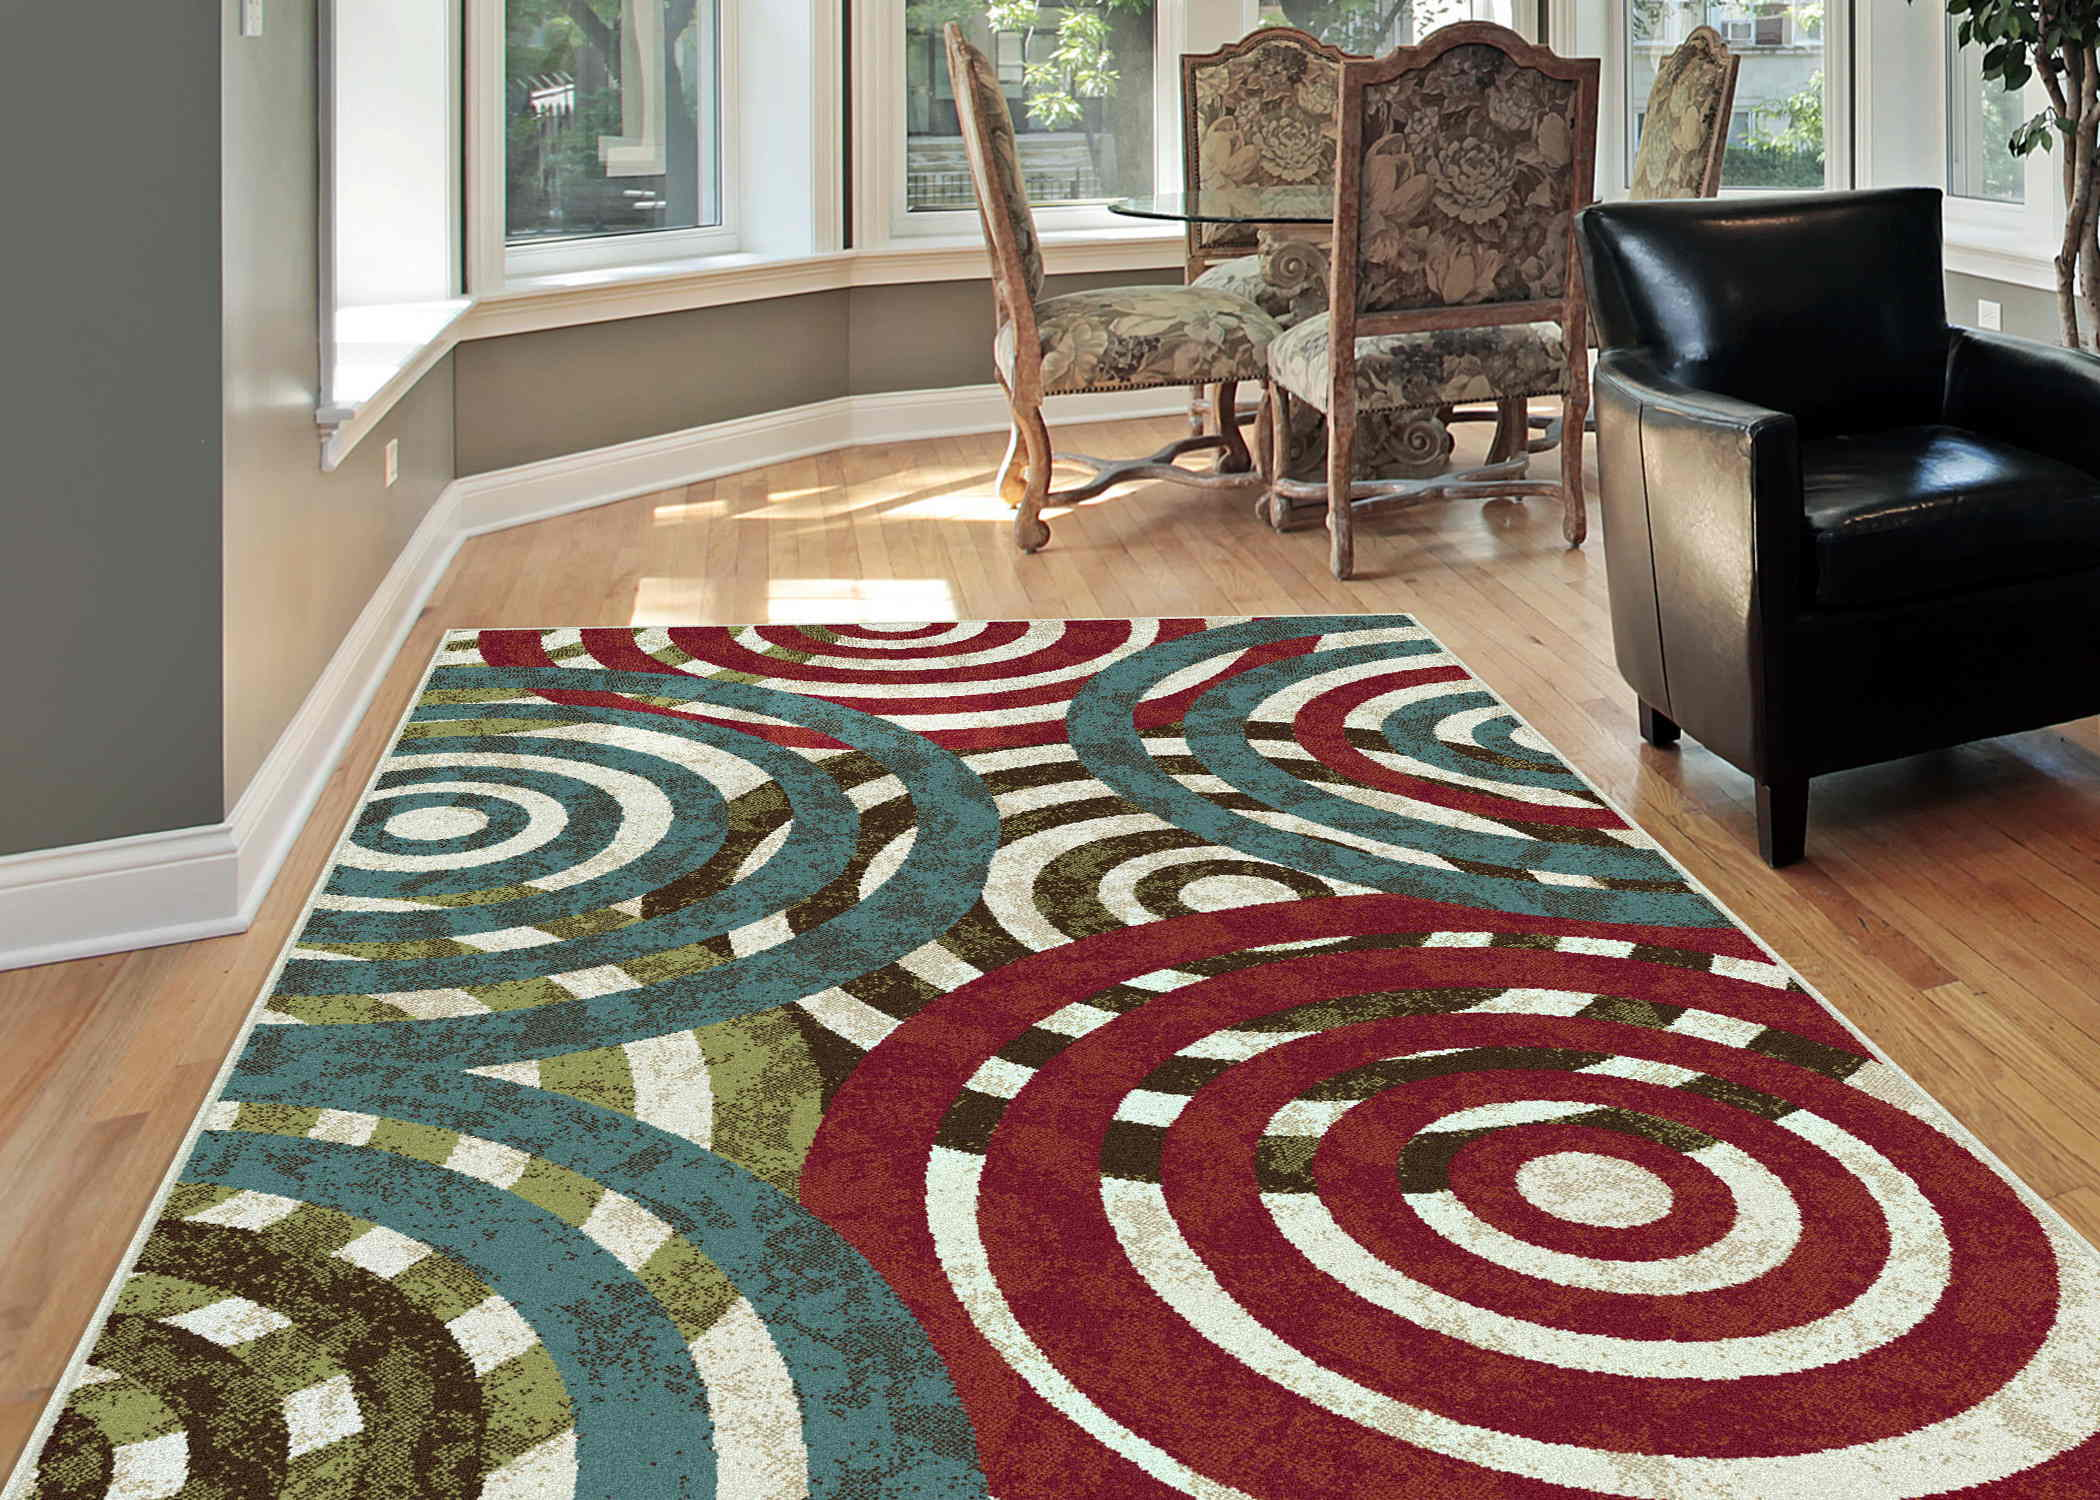 Deco Dco1030 Multi Contemporary Area Rug